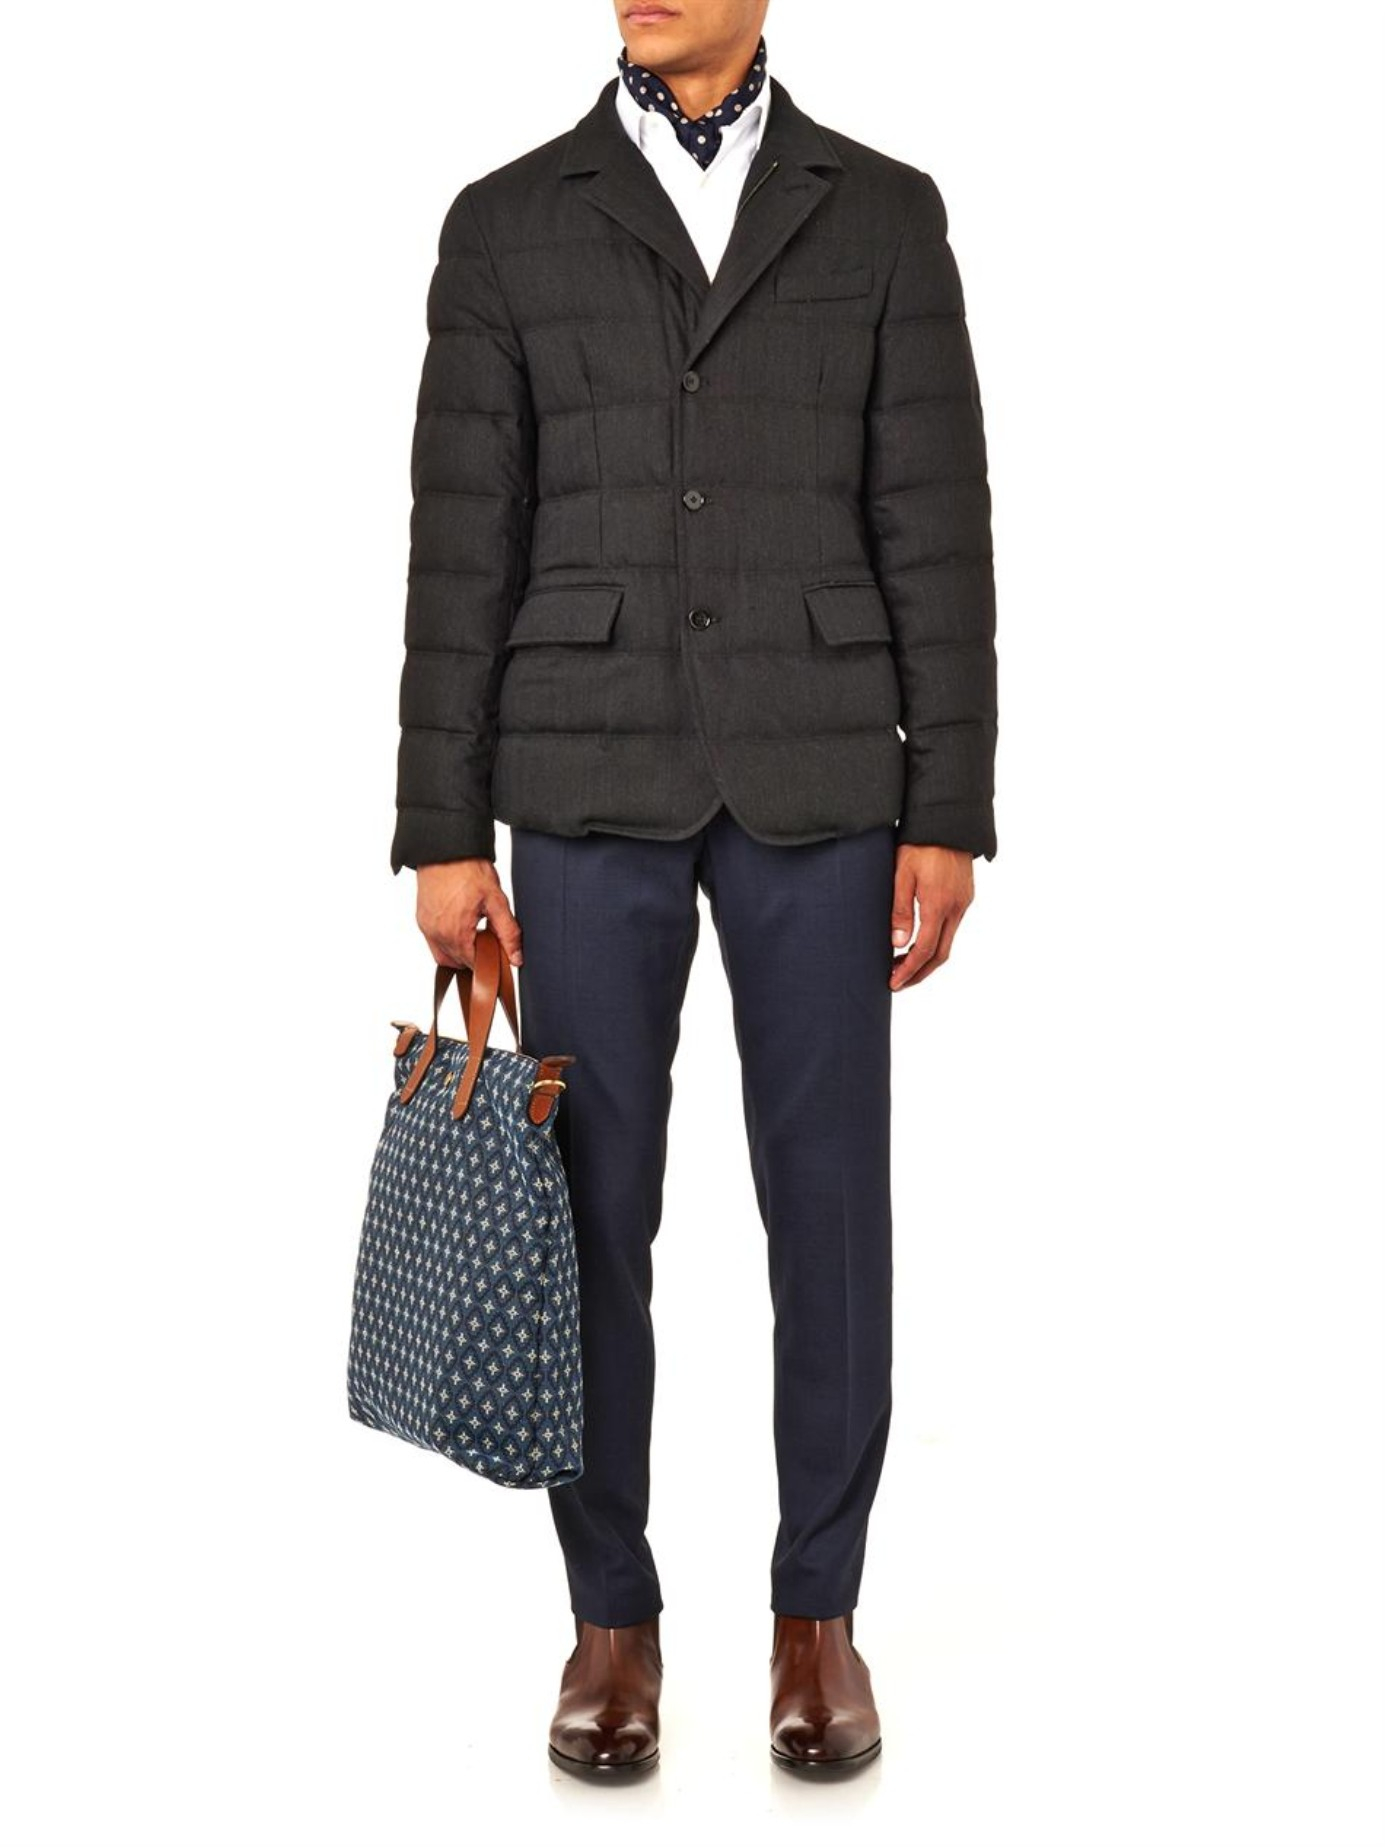 Lyst Dolce Gabbana Quilted Wool Blend Jacket In Gray